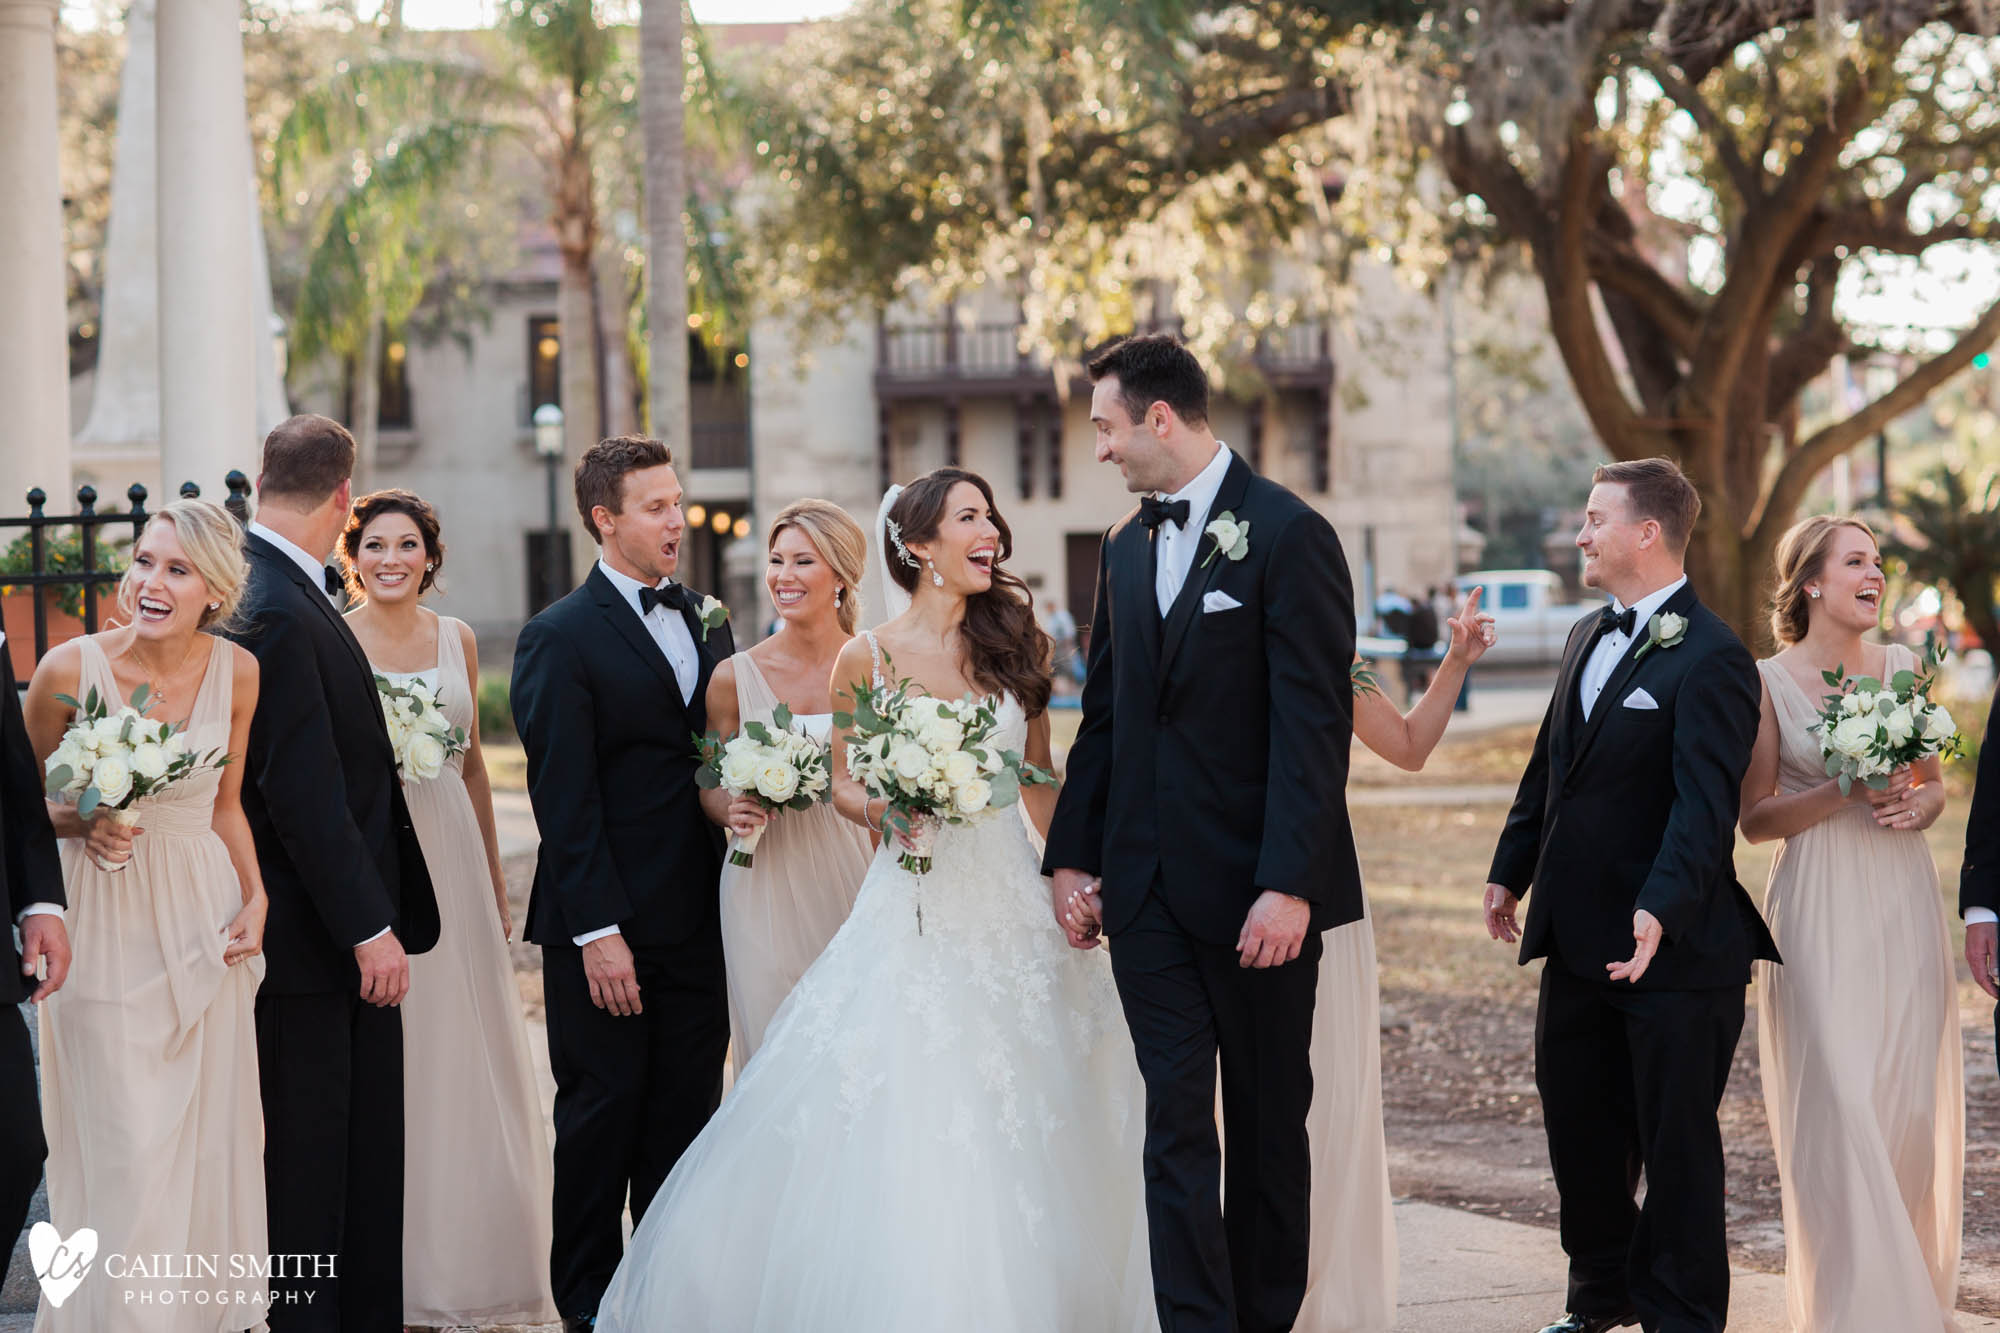 Korrie_Michael_Treasury_on_the_Plaza_Wedding_Photography_041.jpg